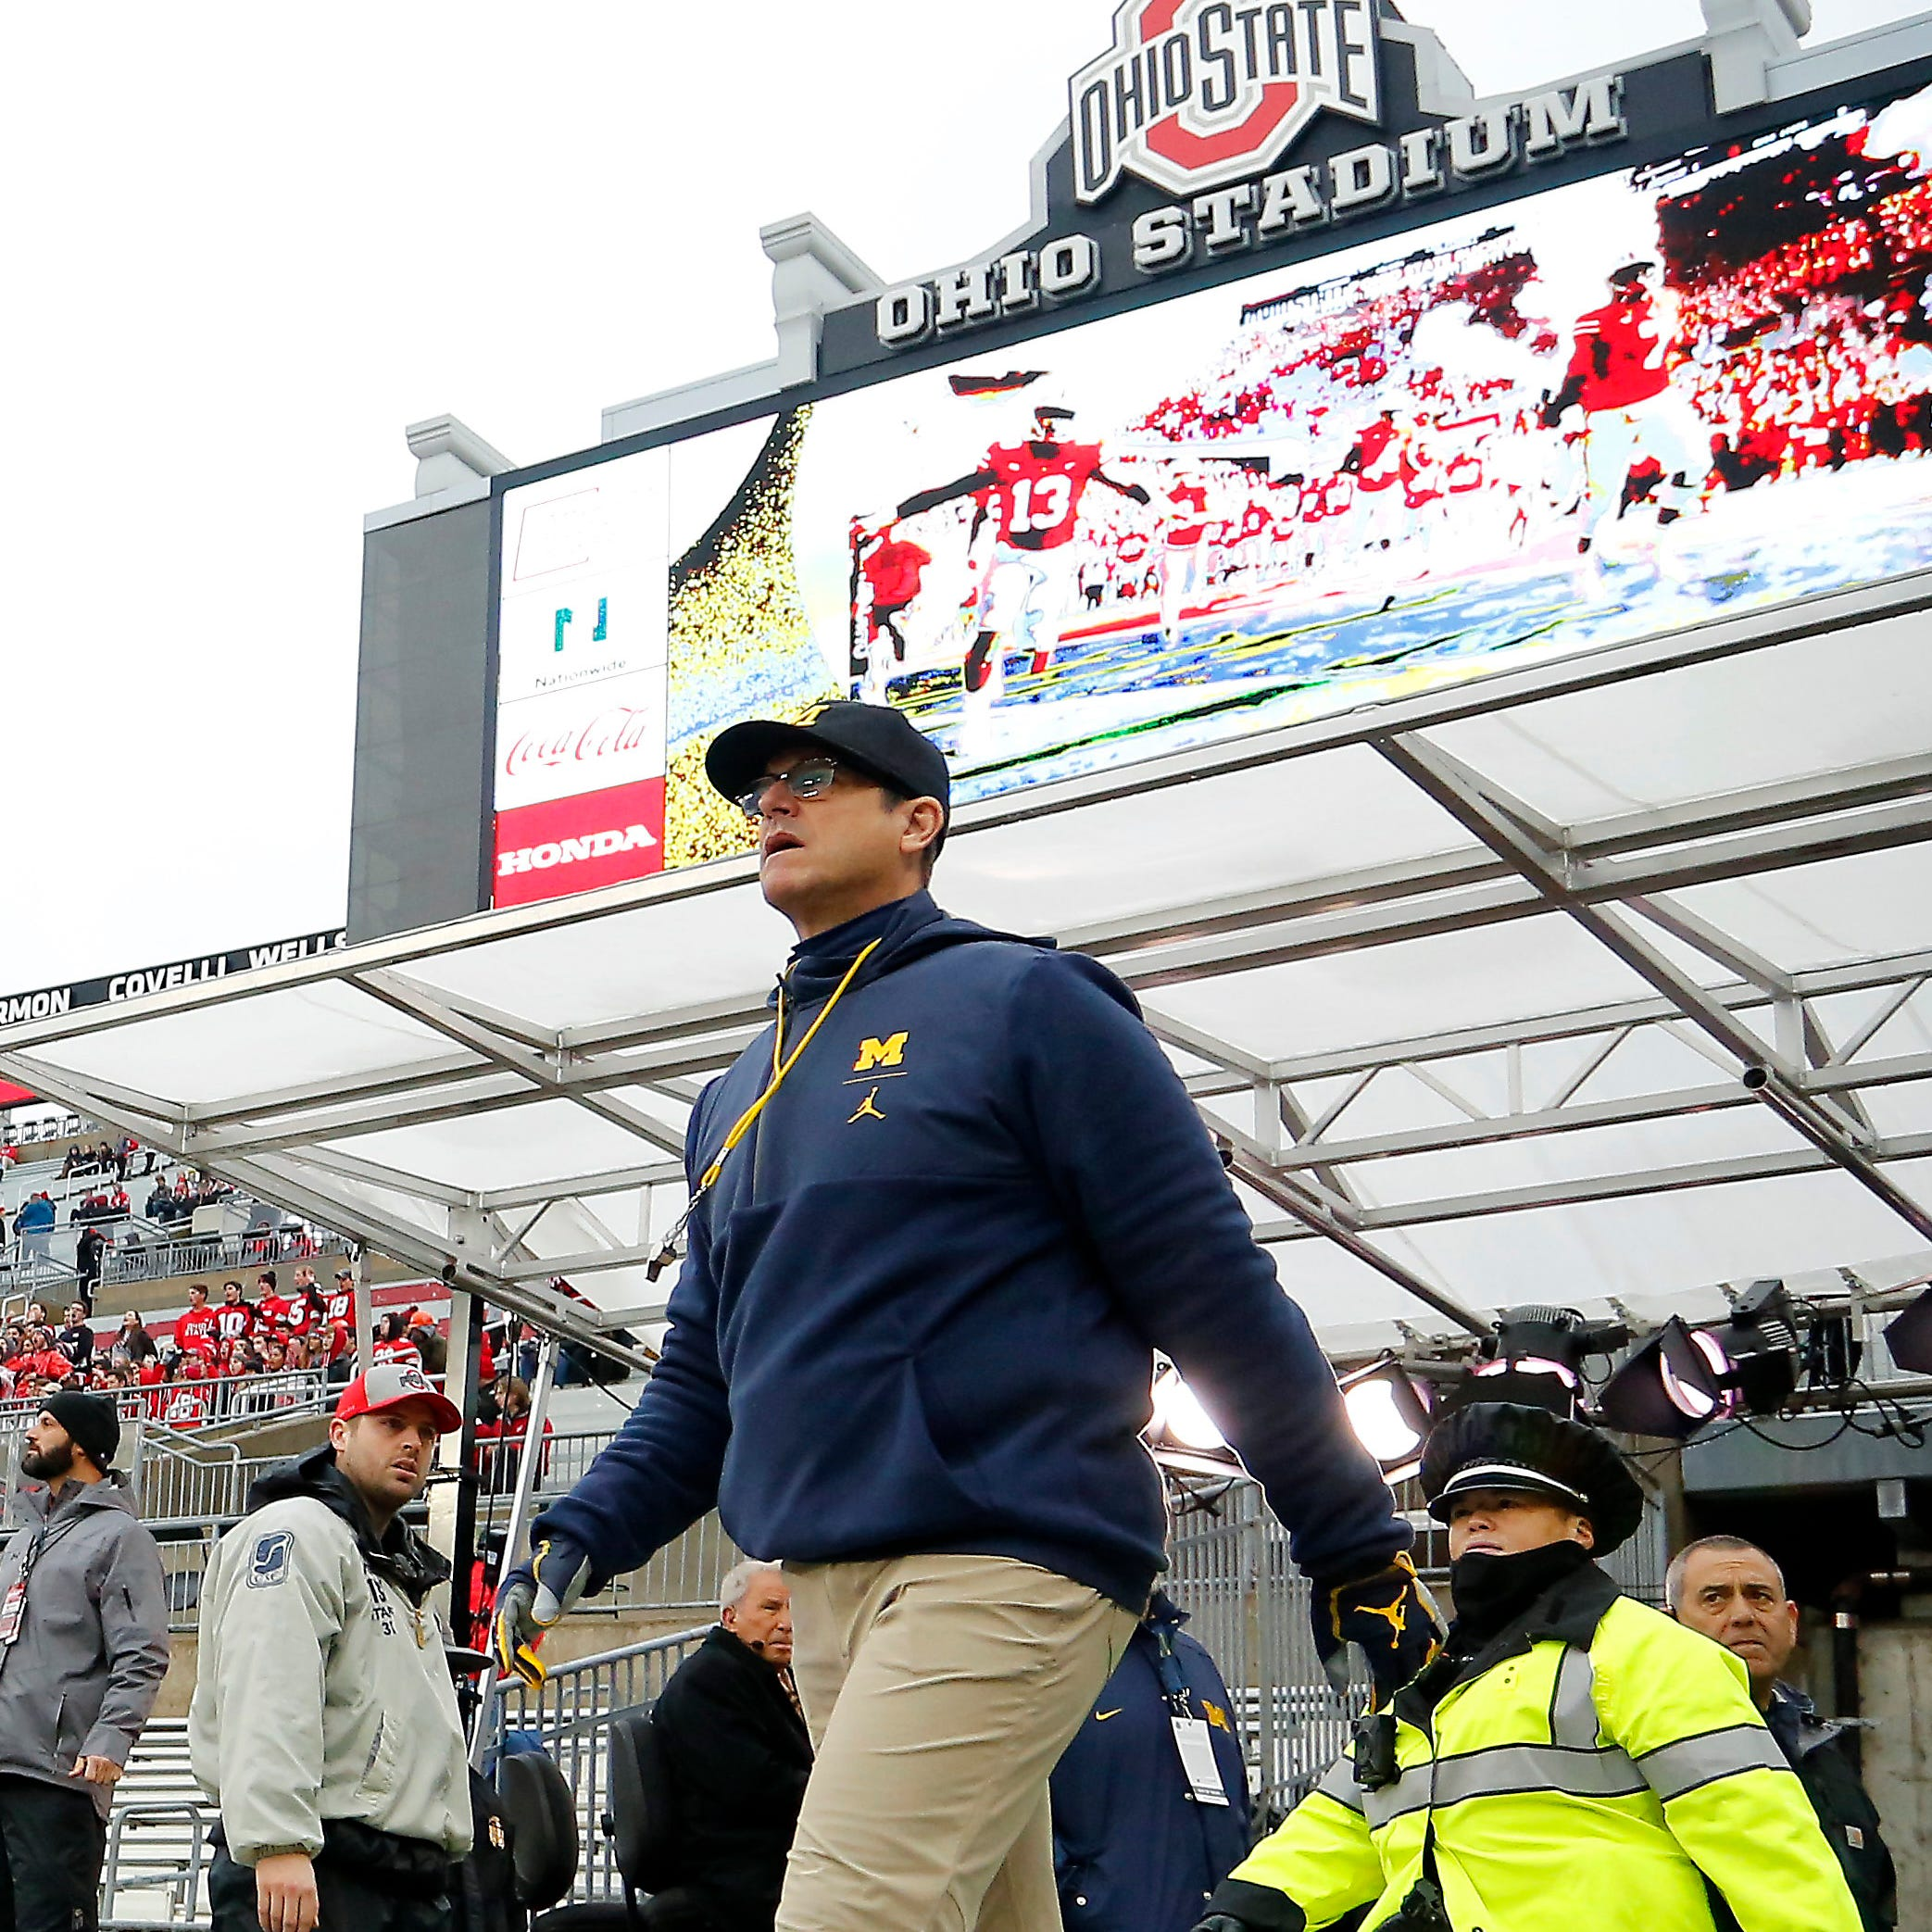 Michigan football has a chip on its shoulder after Ohio State debacle